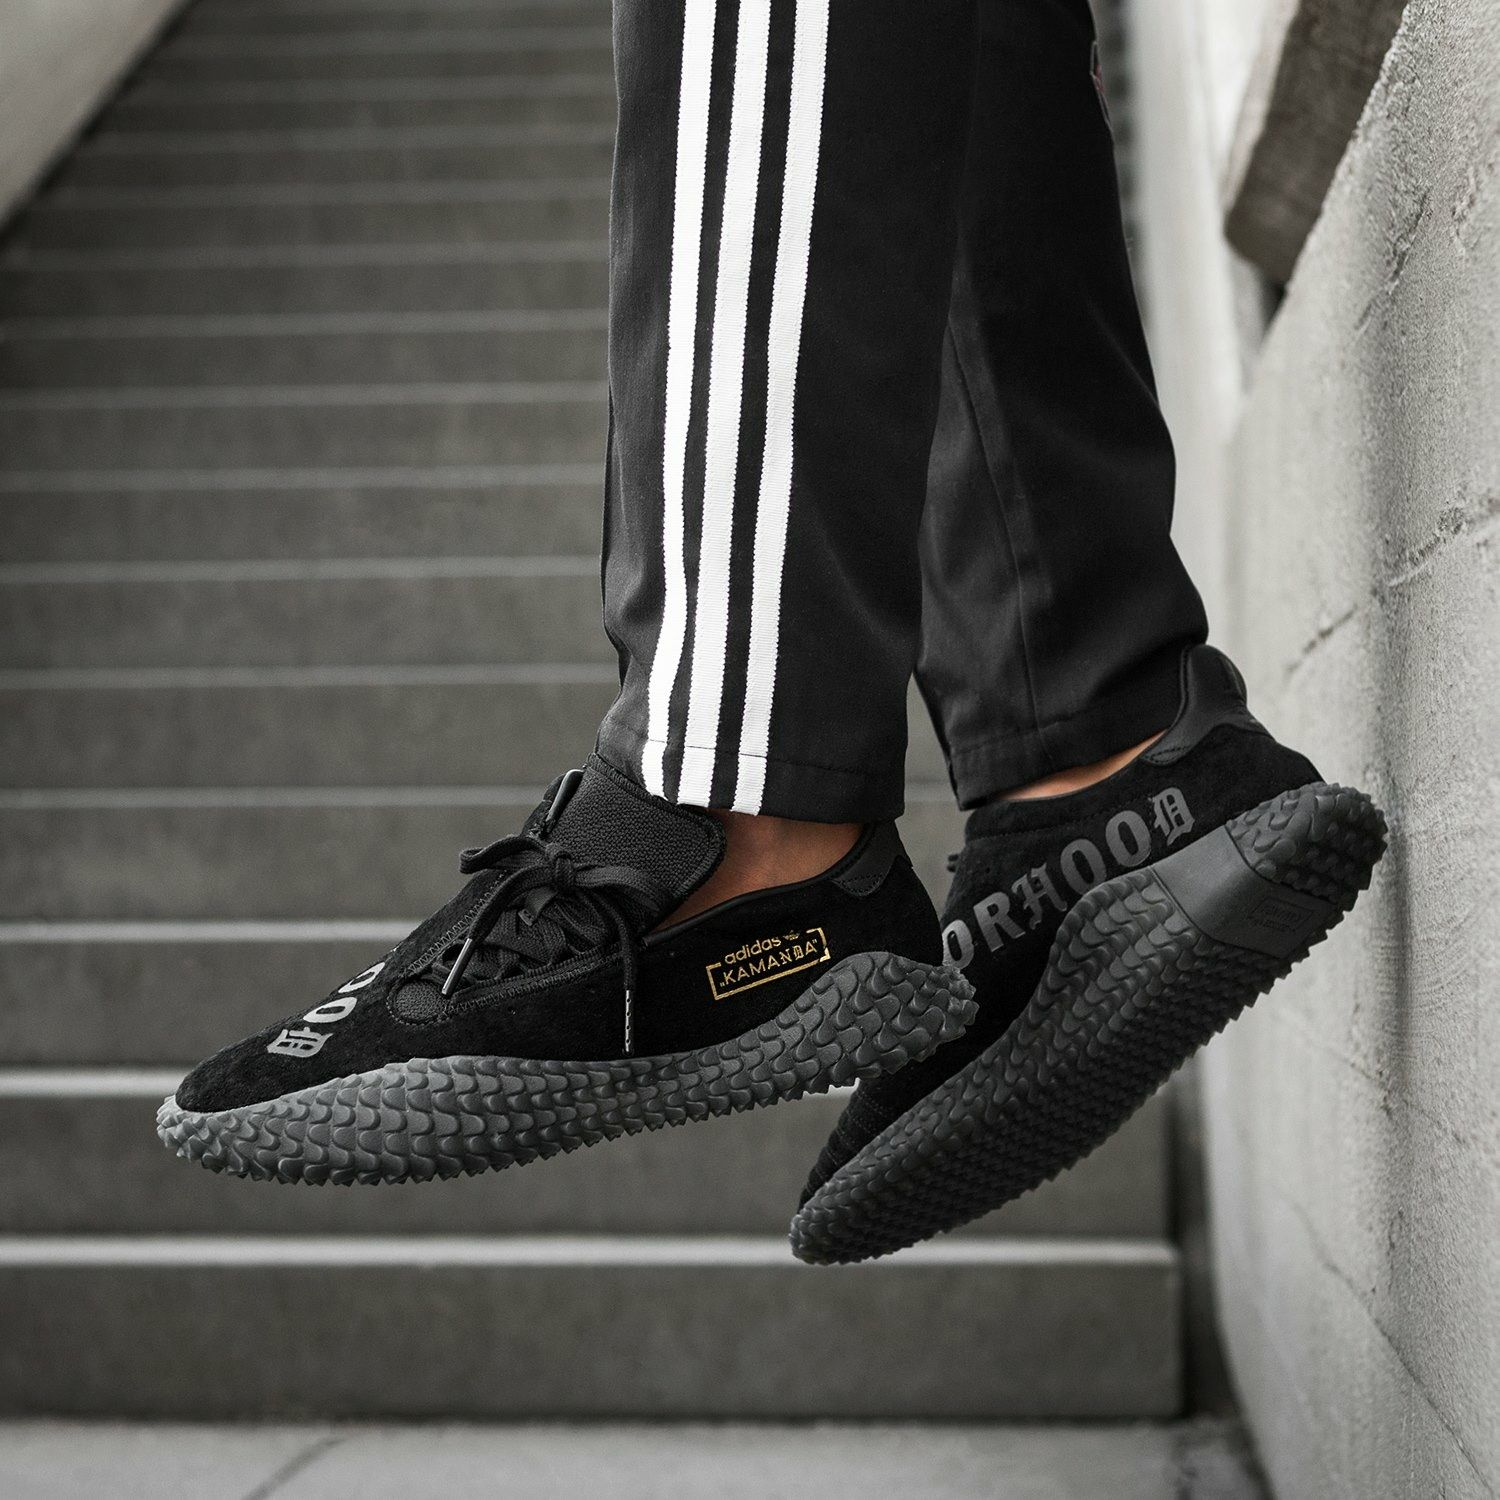 buy popular a6b0f d8e4c NEIGHBORHOOD x adidas Originals Kamanda | Adidas | Sneakers ...